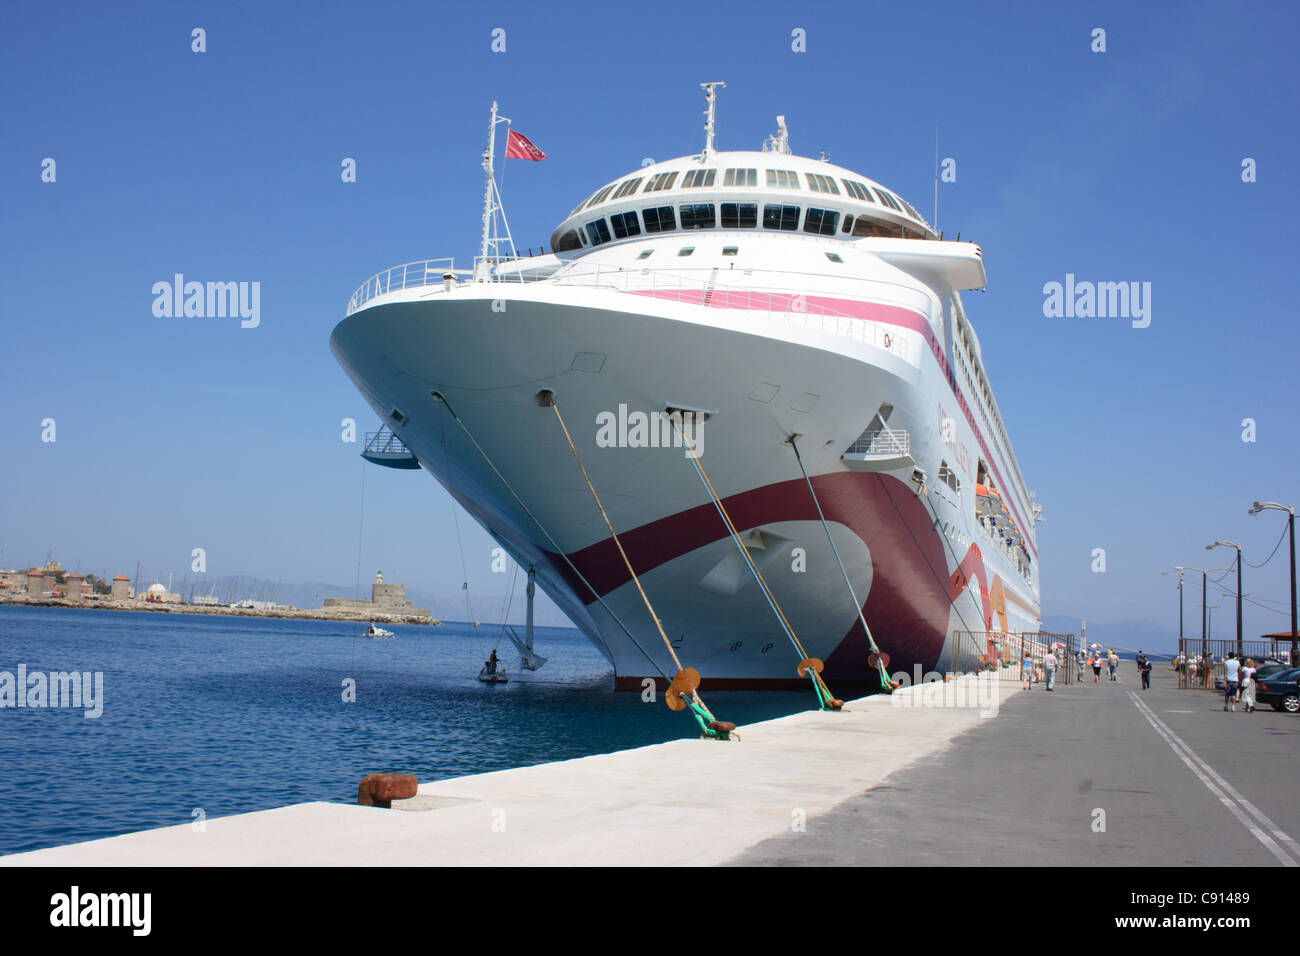 There Are Many Cruise Ships At The Harbour In Rhodes Which Is A - How many cruise ships are there